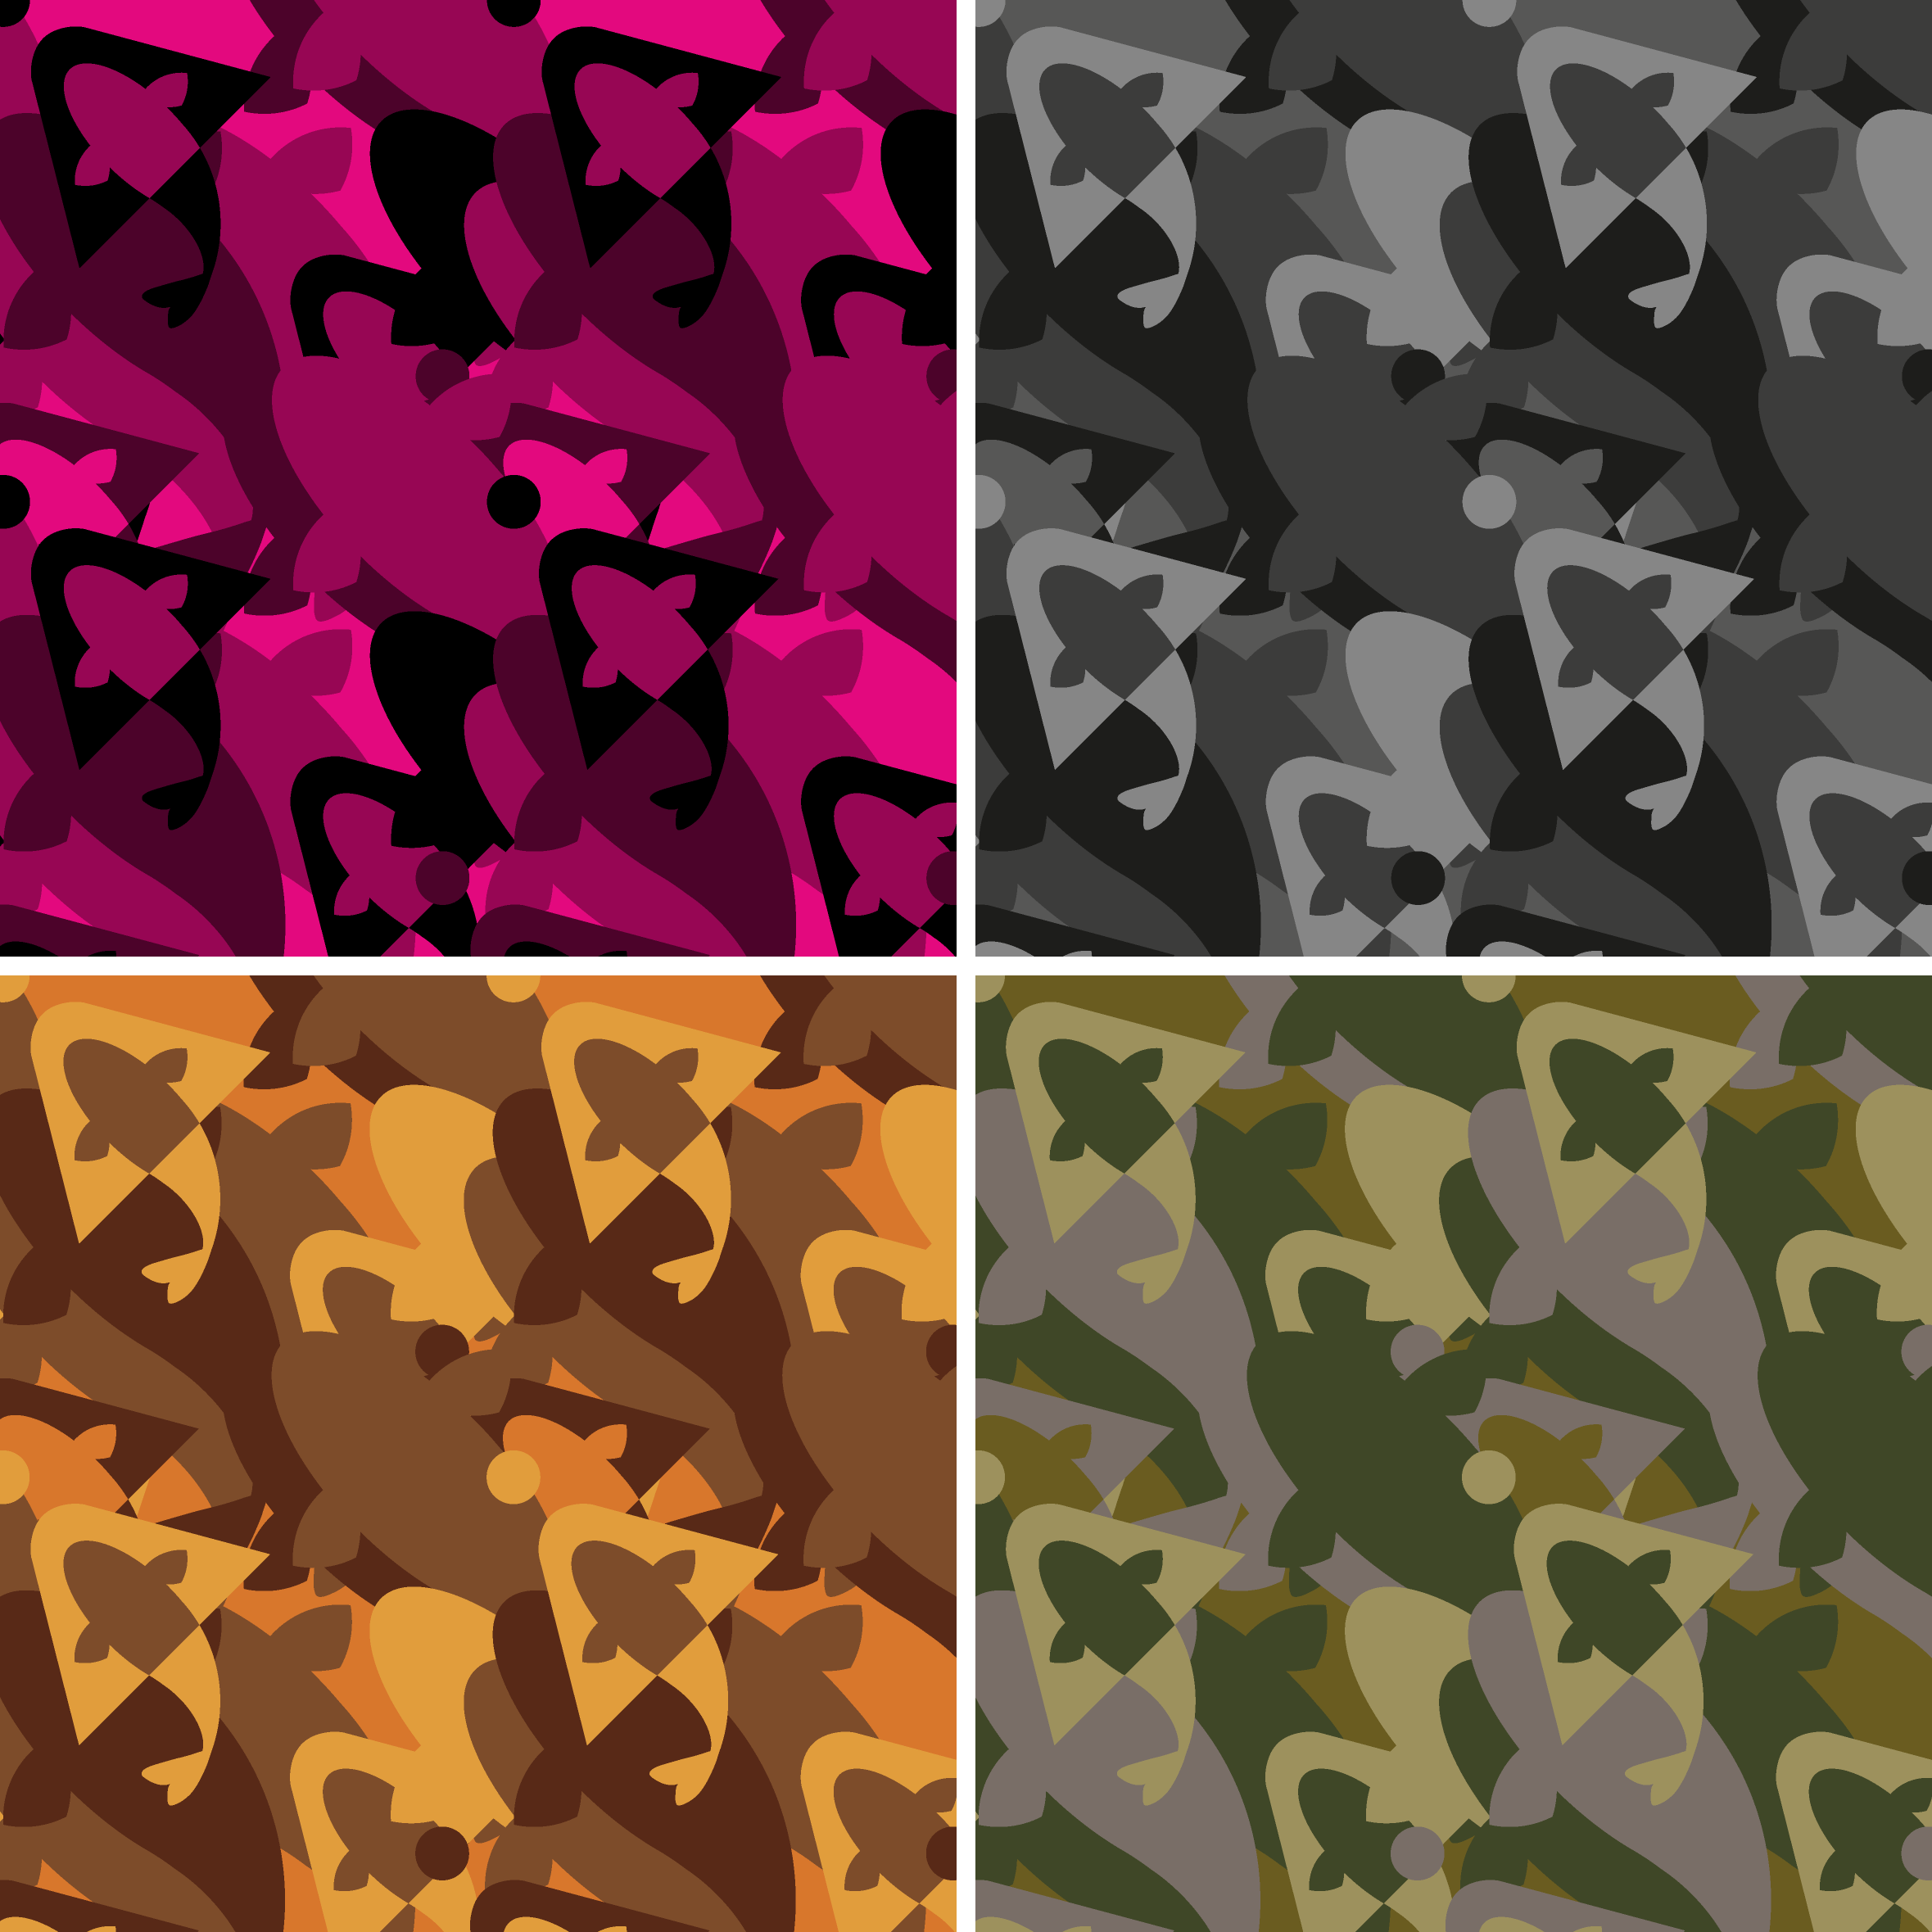 Selection of 'camo' background patterns used to differentiate product sectors